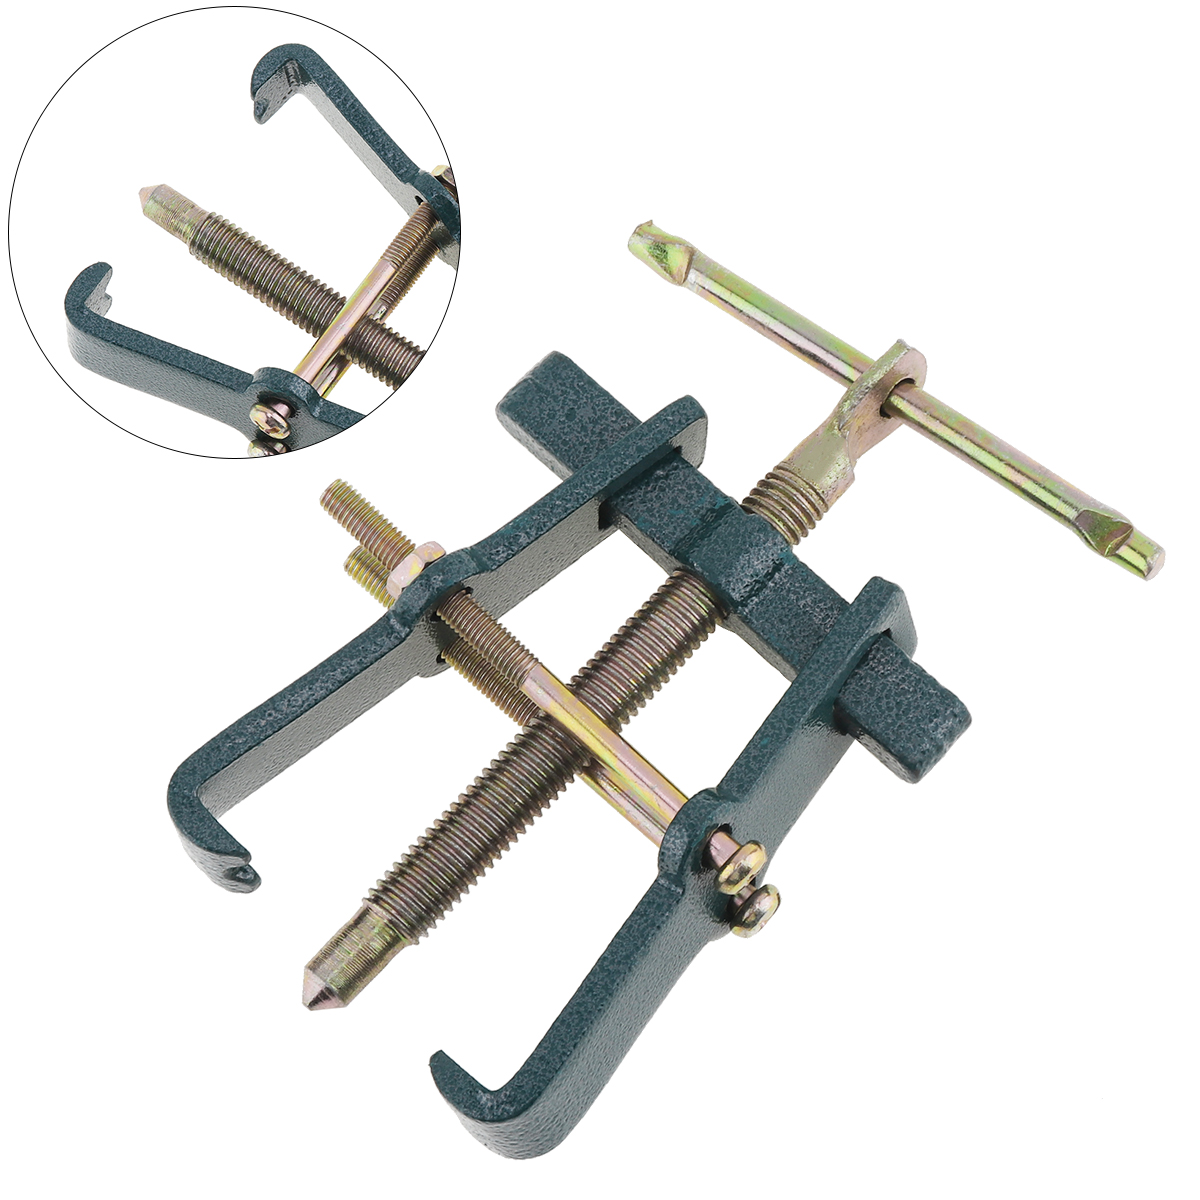 3 Inch Two-claw Puller Separate Lifting Device Multi-purpose Pull Strengthen Bearing Rama for Auto Mechanic Hand Tools hot